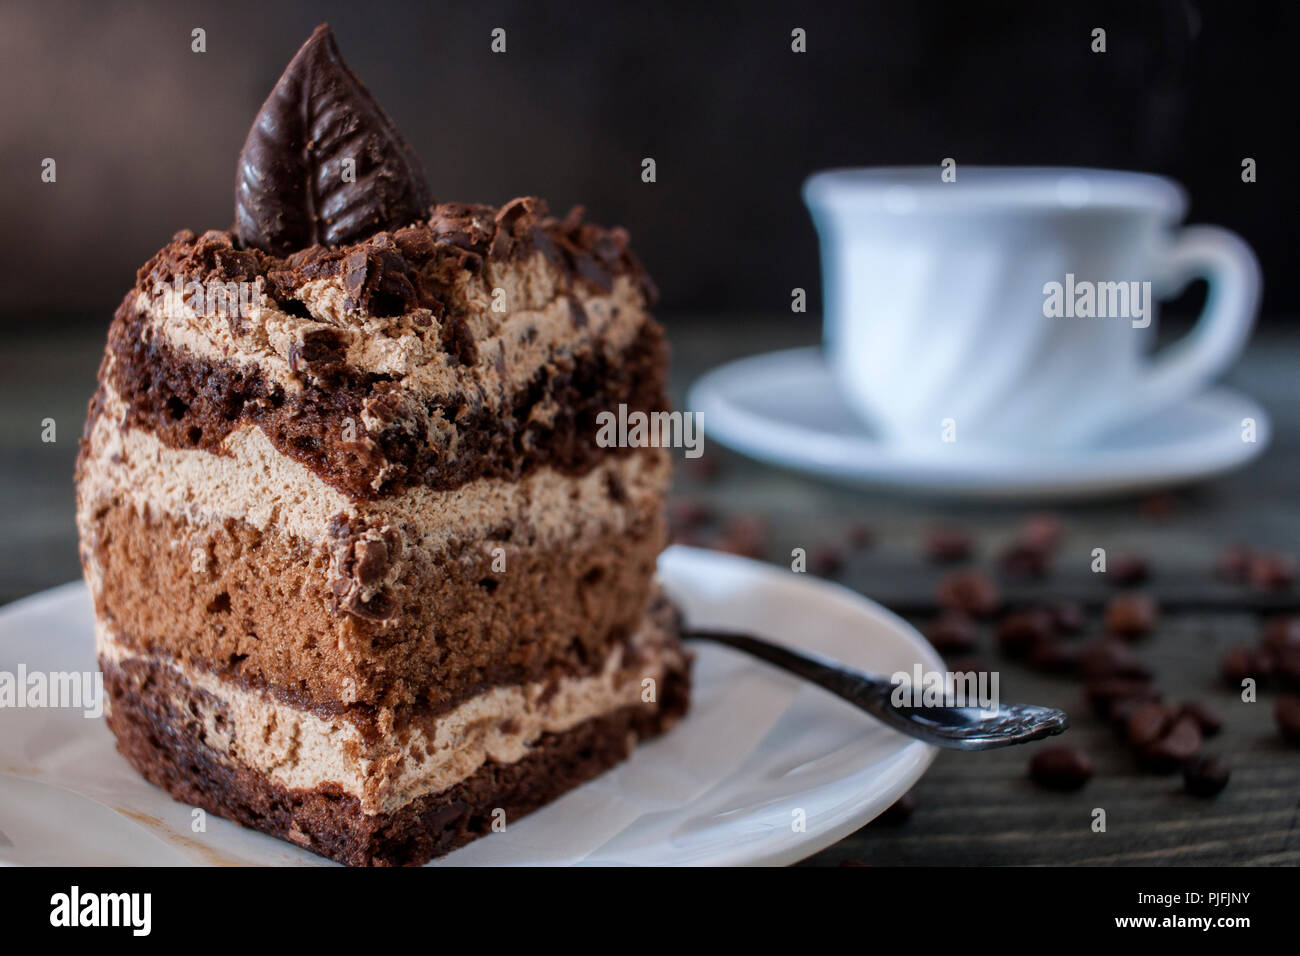 Tasty piece of chocolate cake on wooden table background - Stock Image